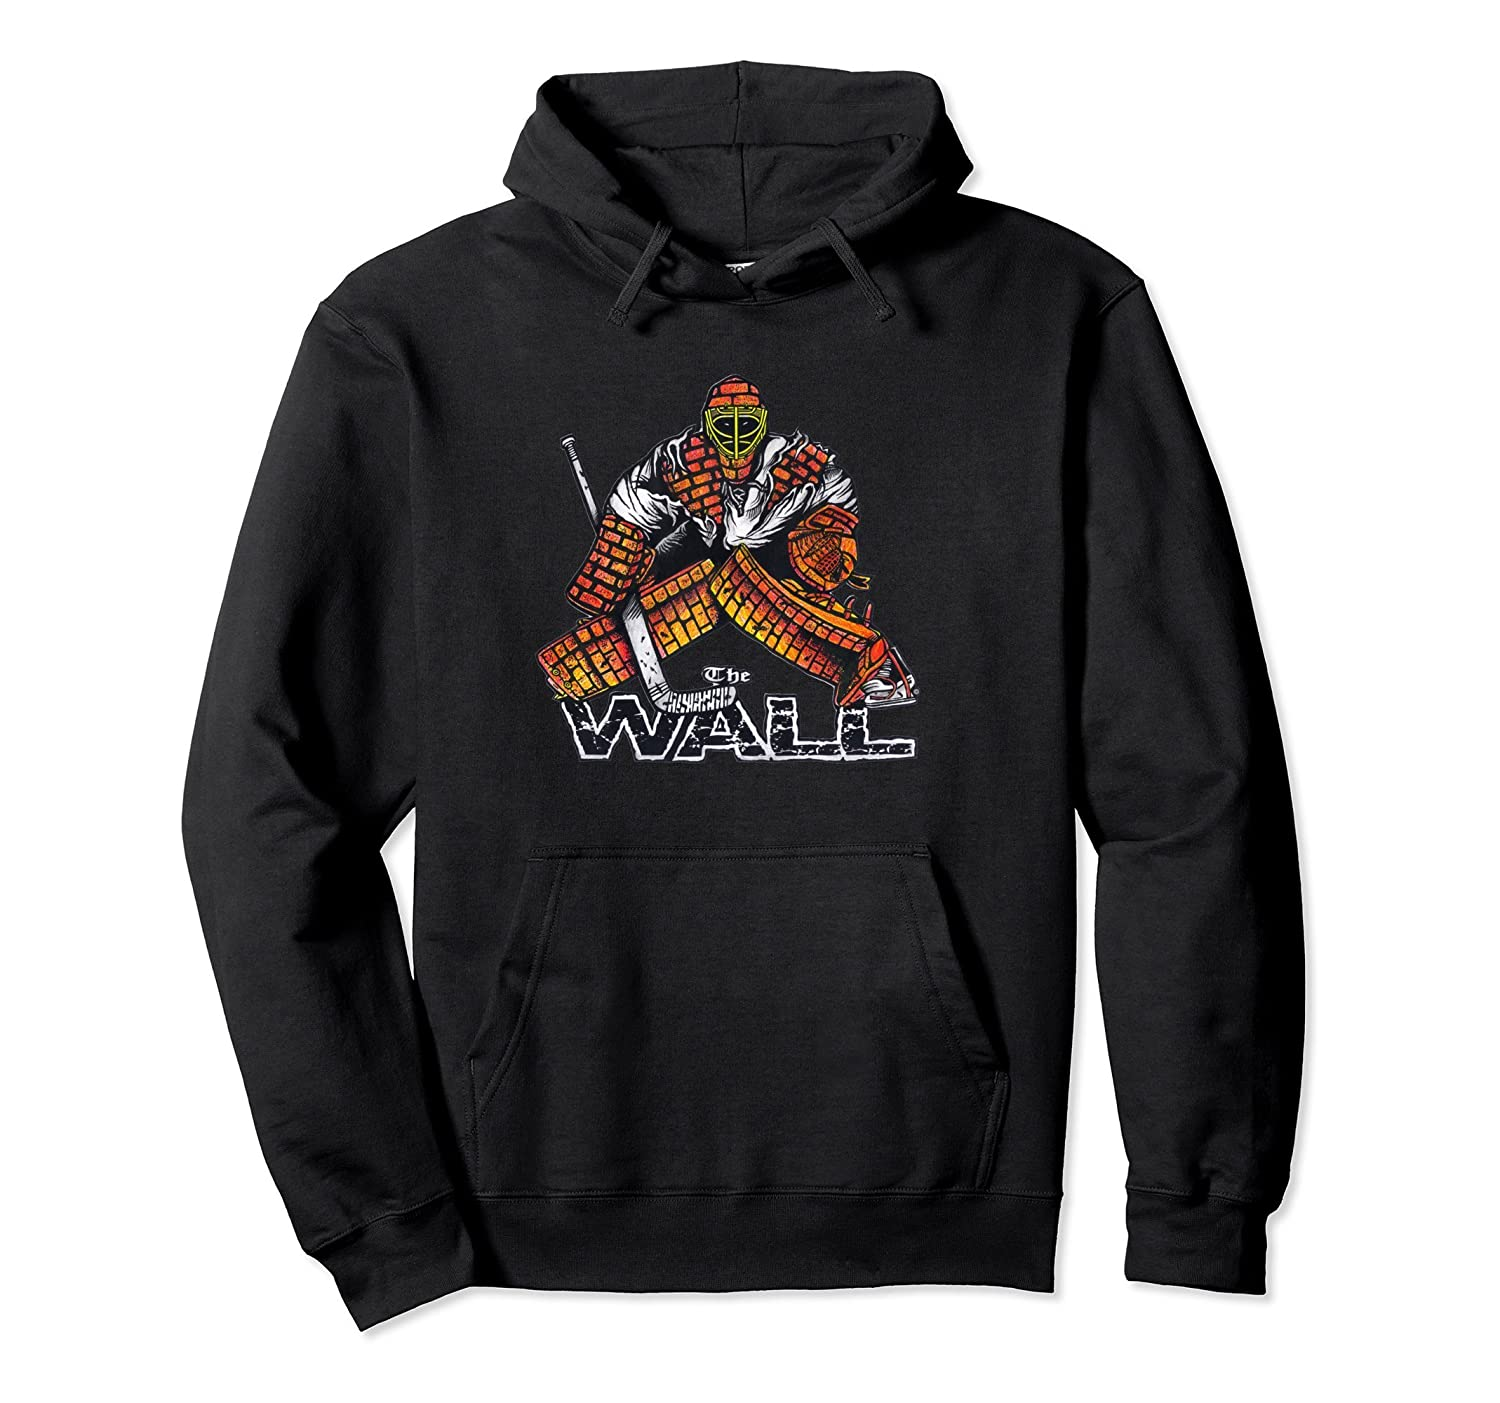 Hockey Goalie Hooded Sweatshirt nothing gets by THE WALL